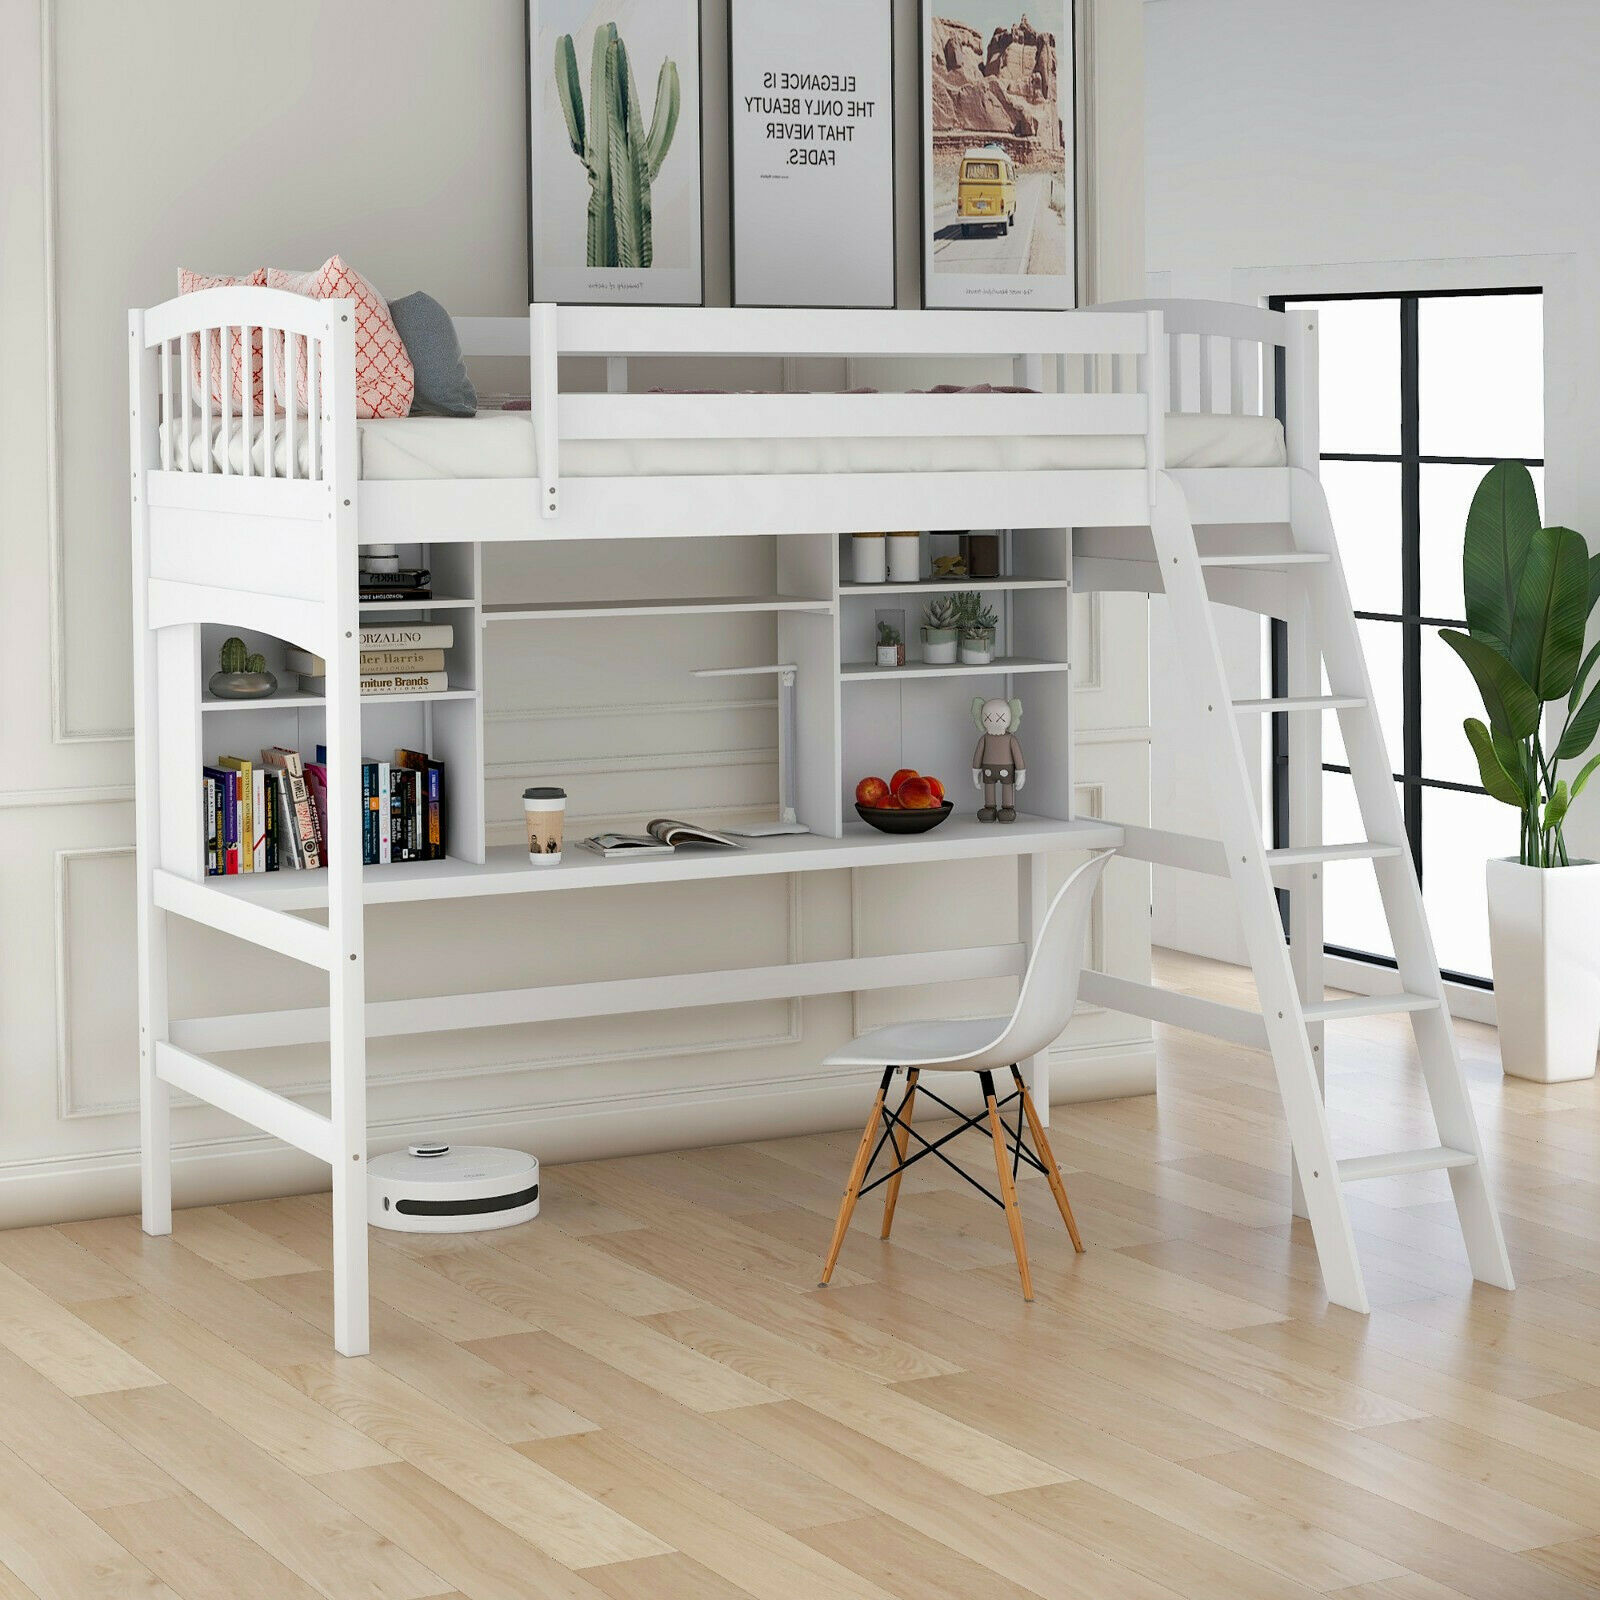 Picture of: Canwood Skyway Loft Bed With Desk And Storage Tower Twin Espresso For Sale Online Ebay